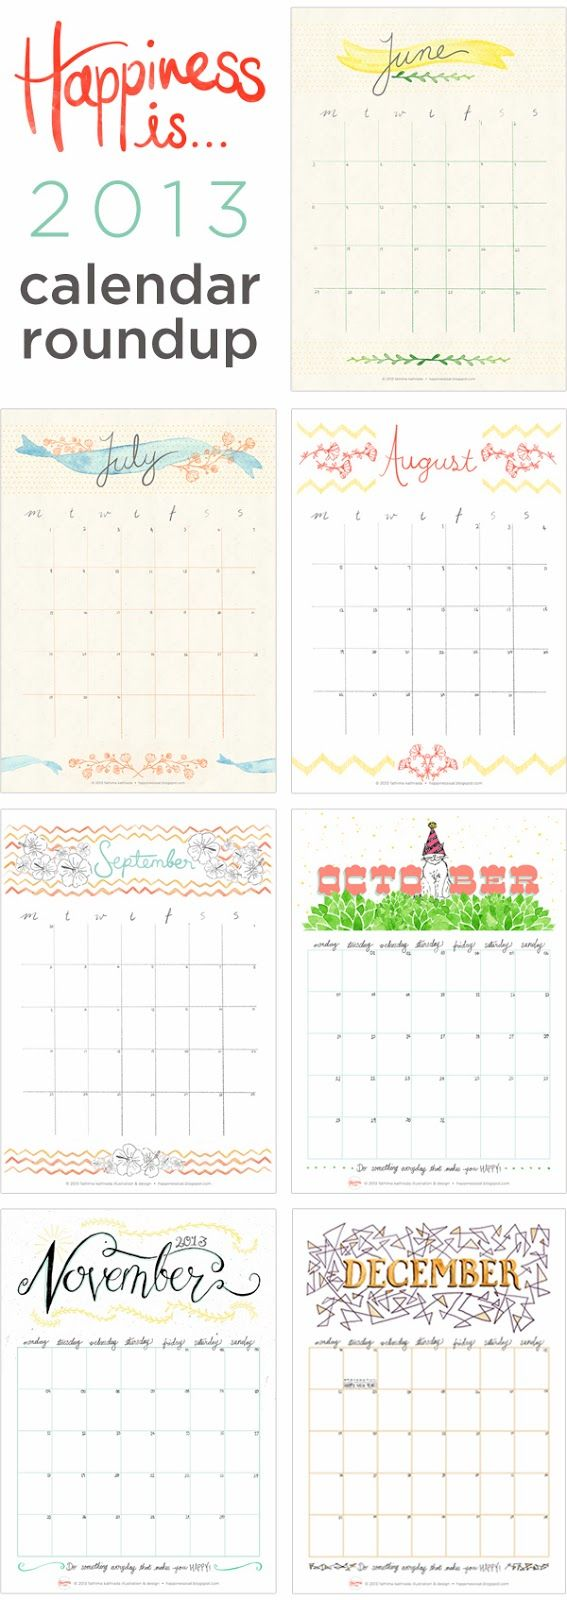 Happiness is...: Happy New Year! + Free January Calendar Planner